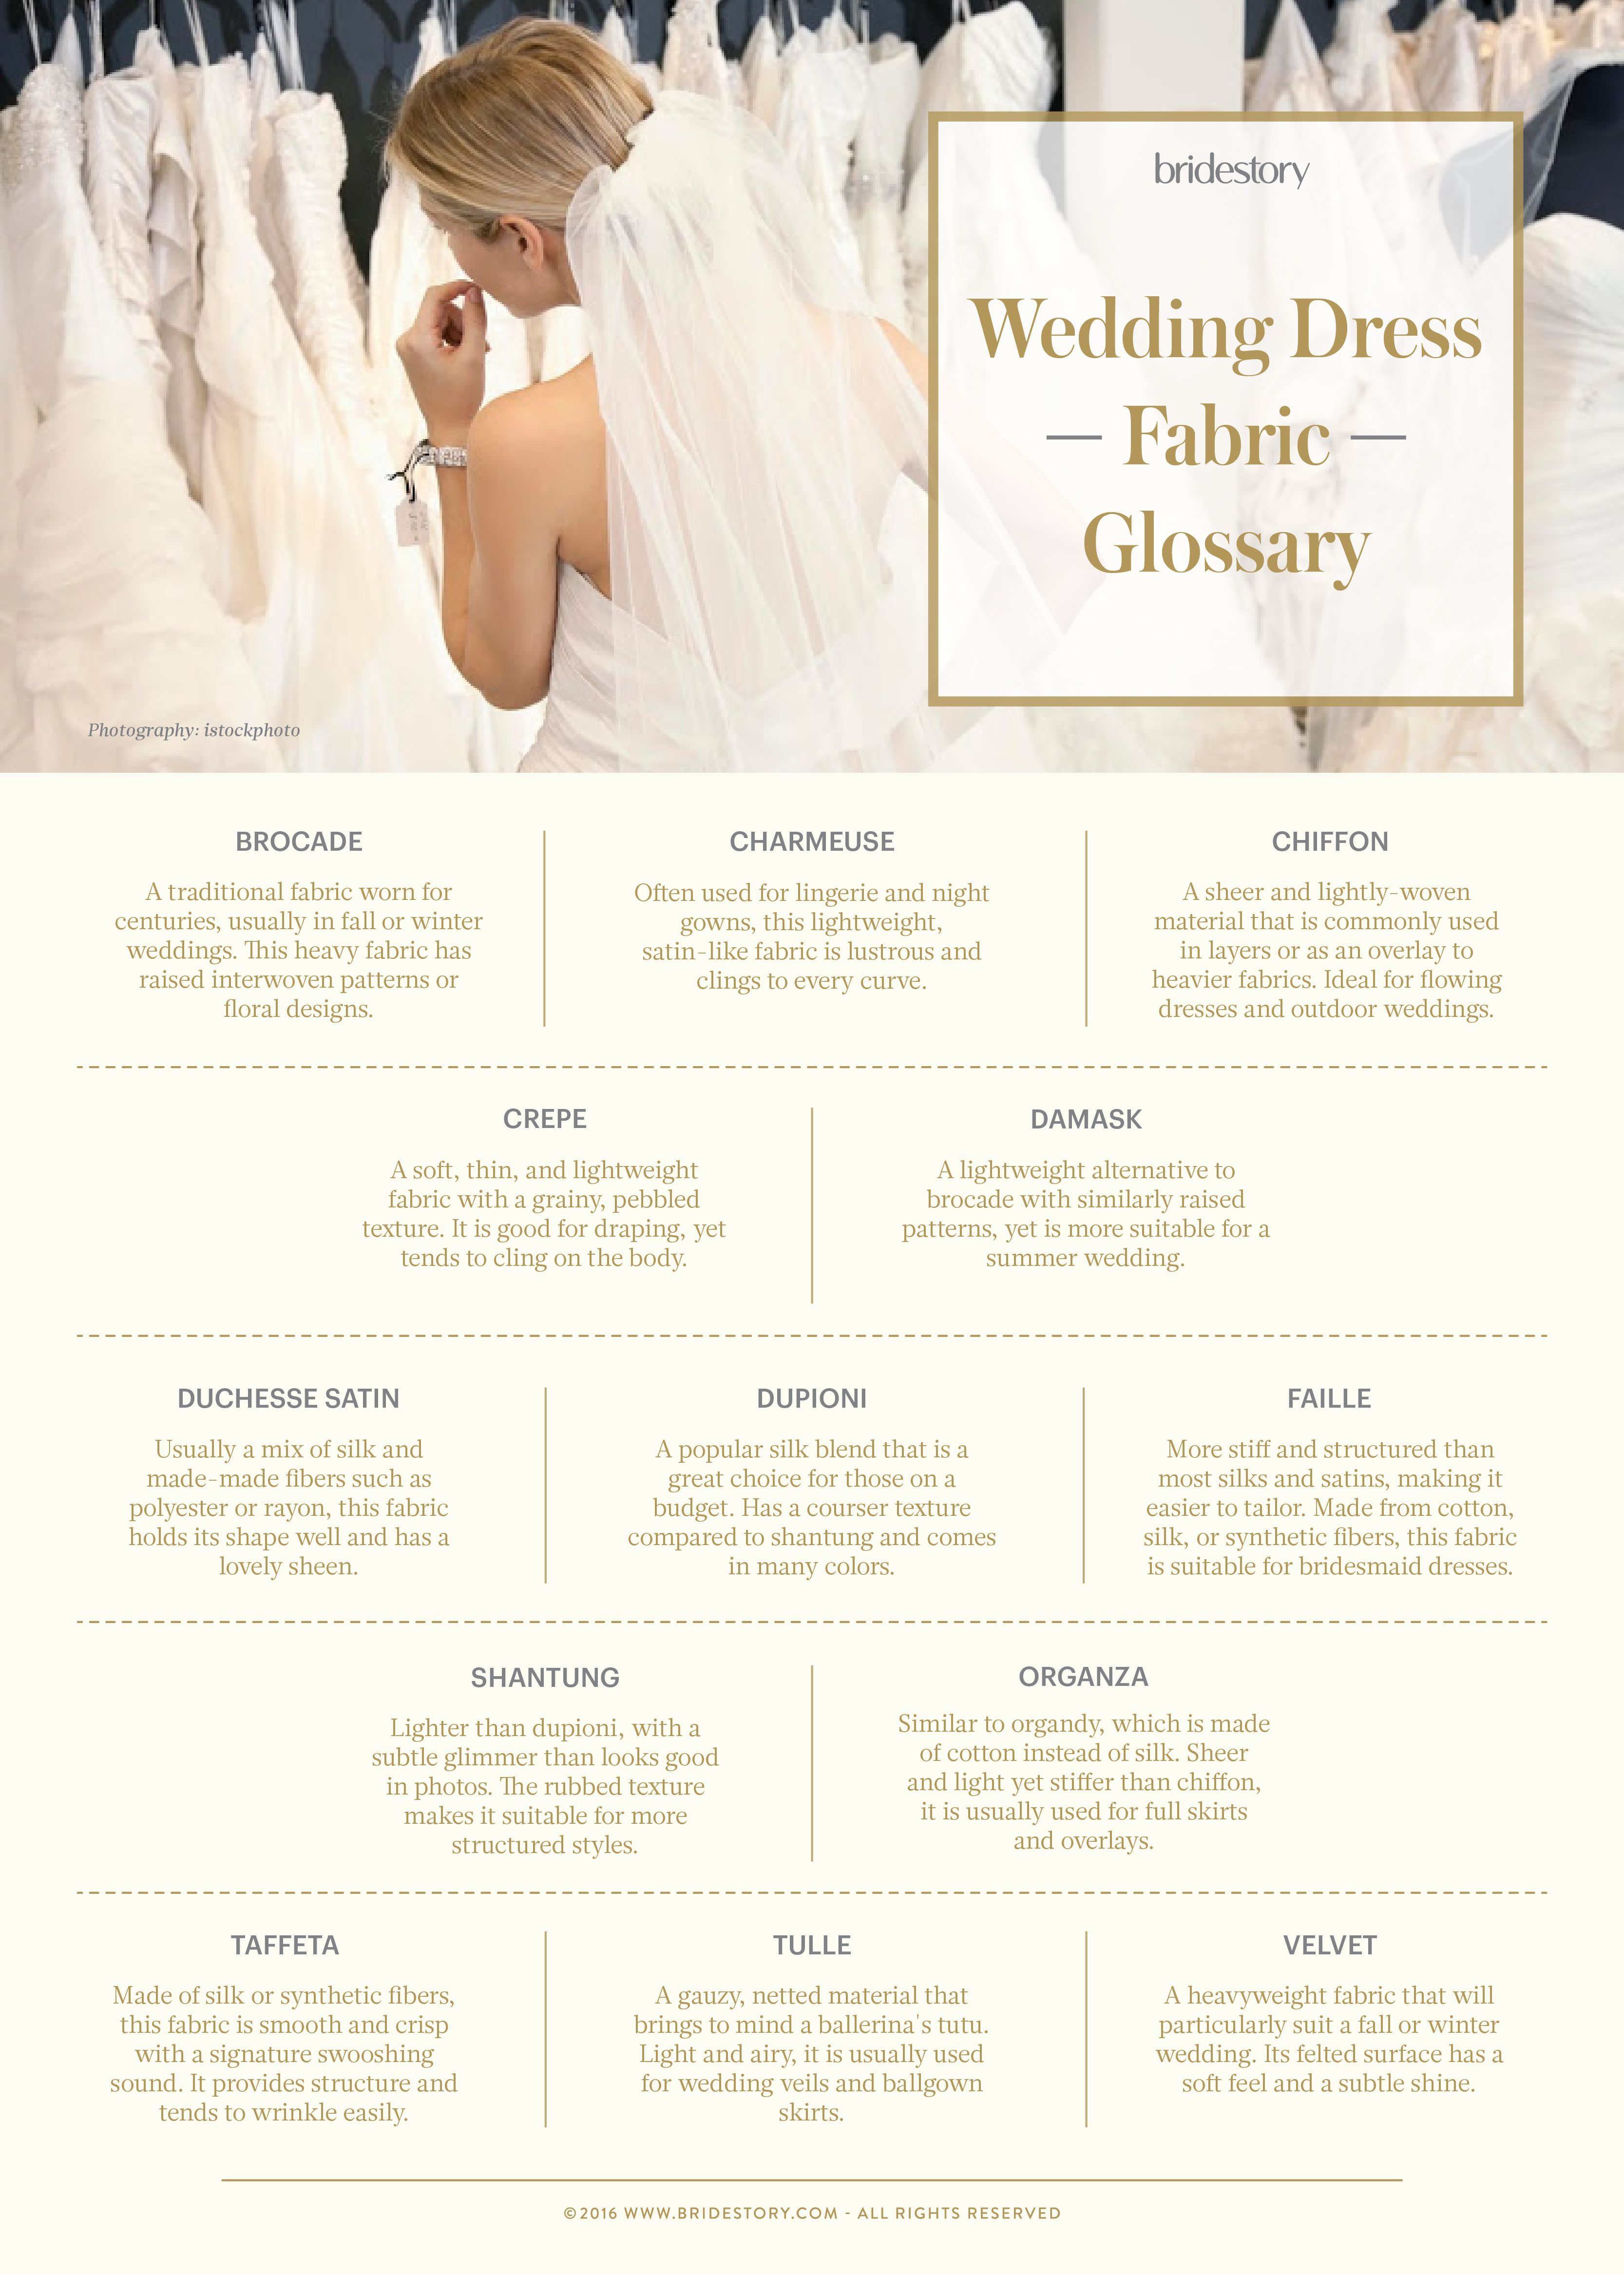 the bride's guide to finding the perfect wedding dress